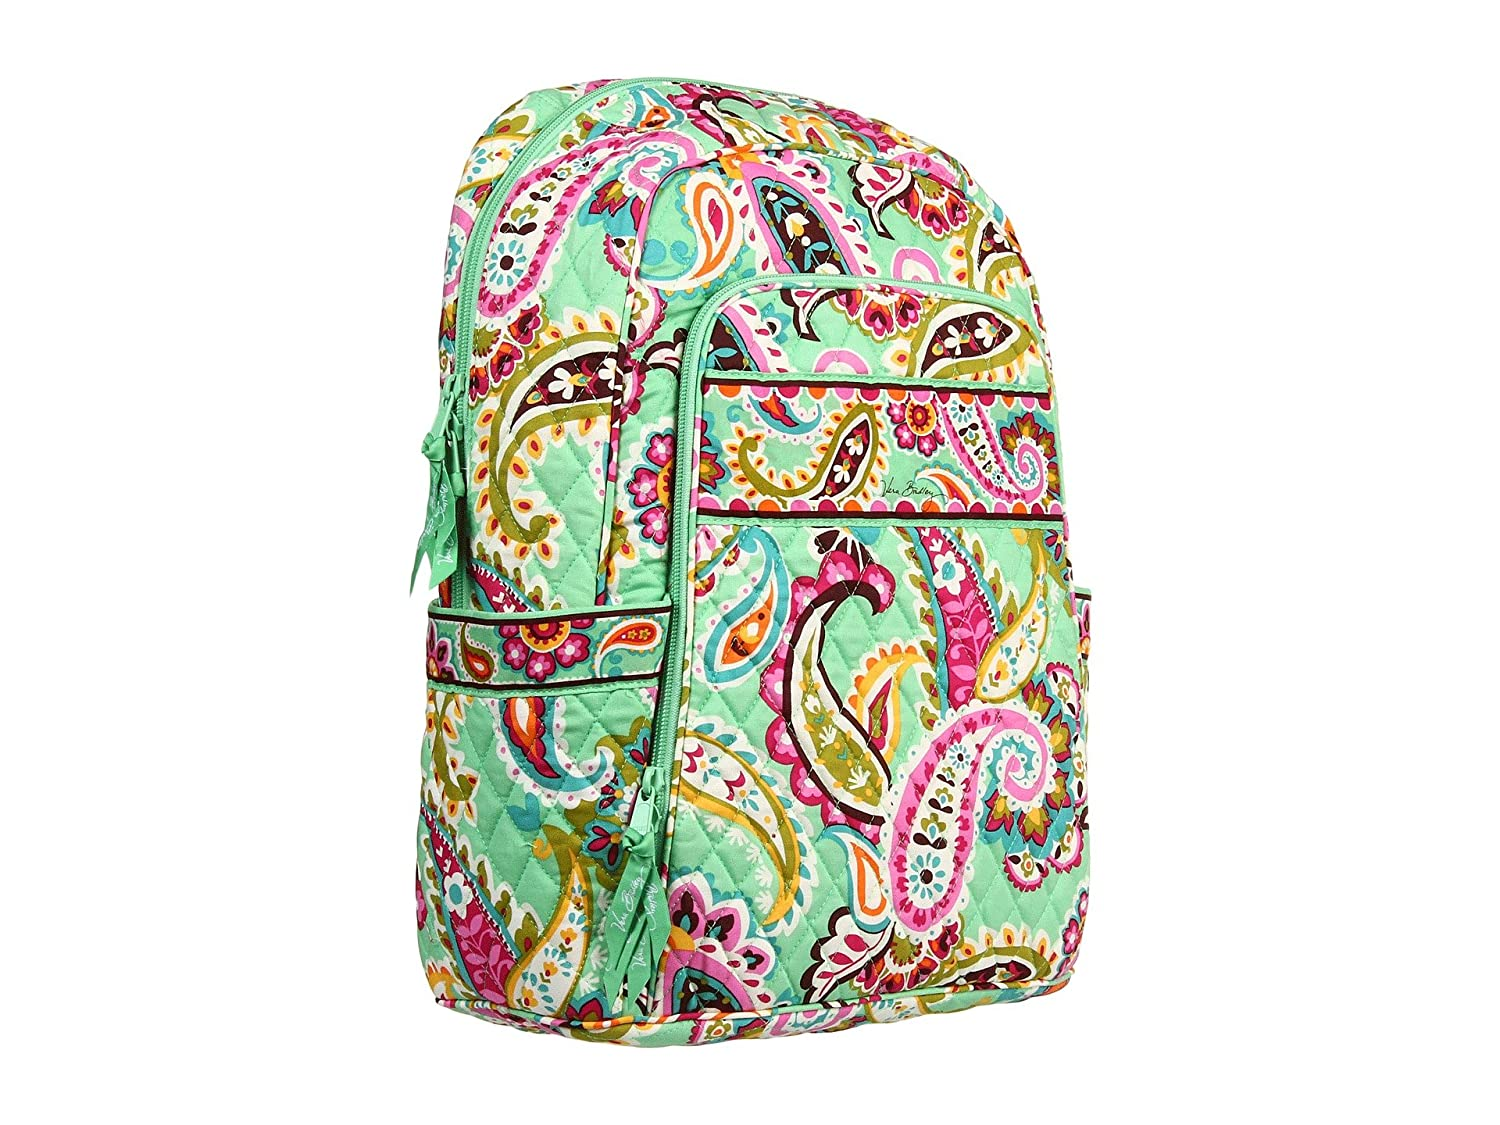 65cde88e81 Amazon.com  Vera Bradley Laptop Backpack (Tutti Frutti)  Clothing